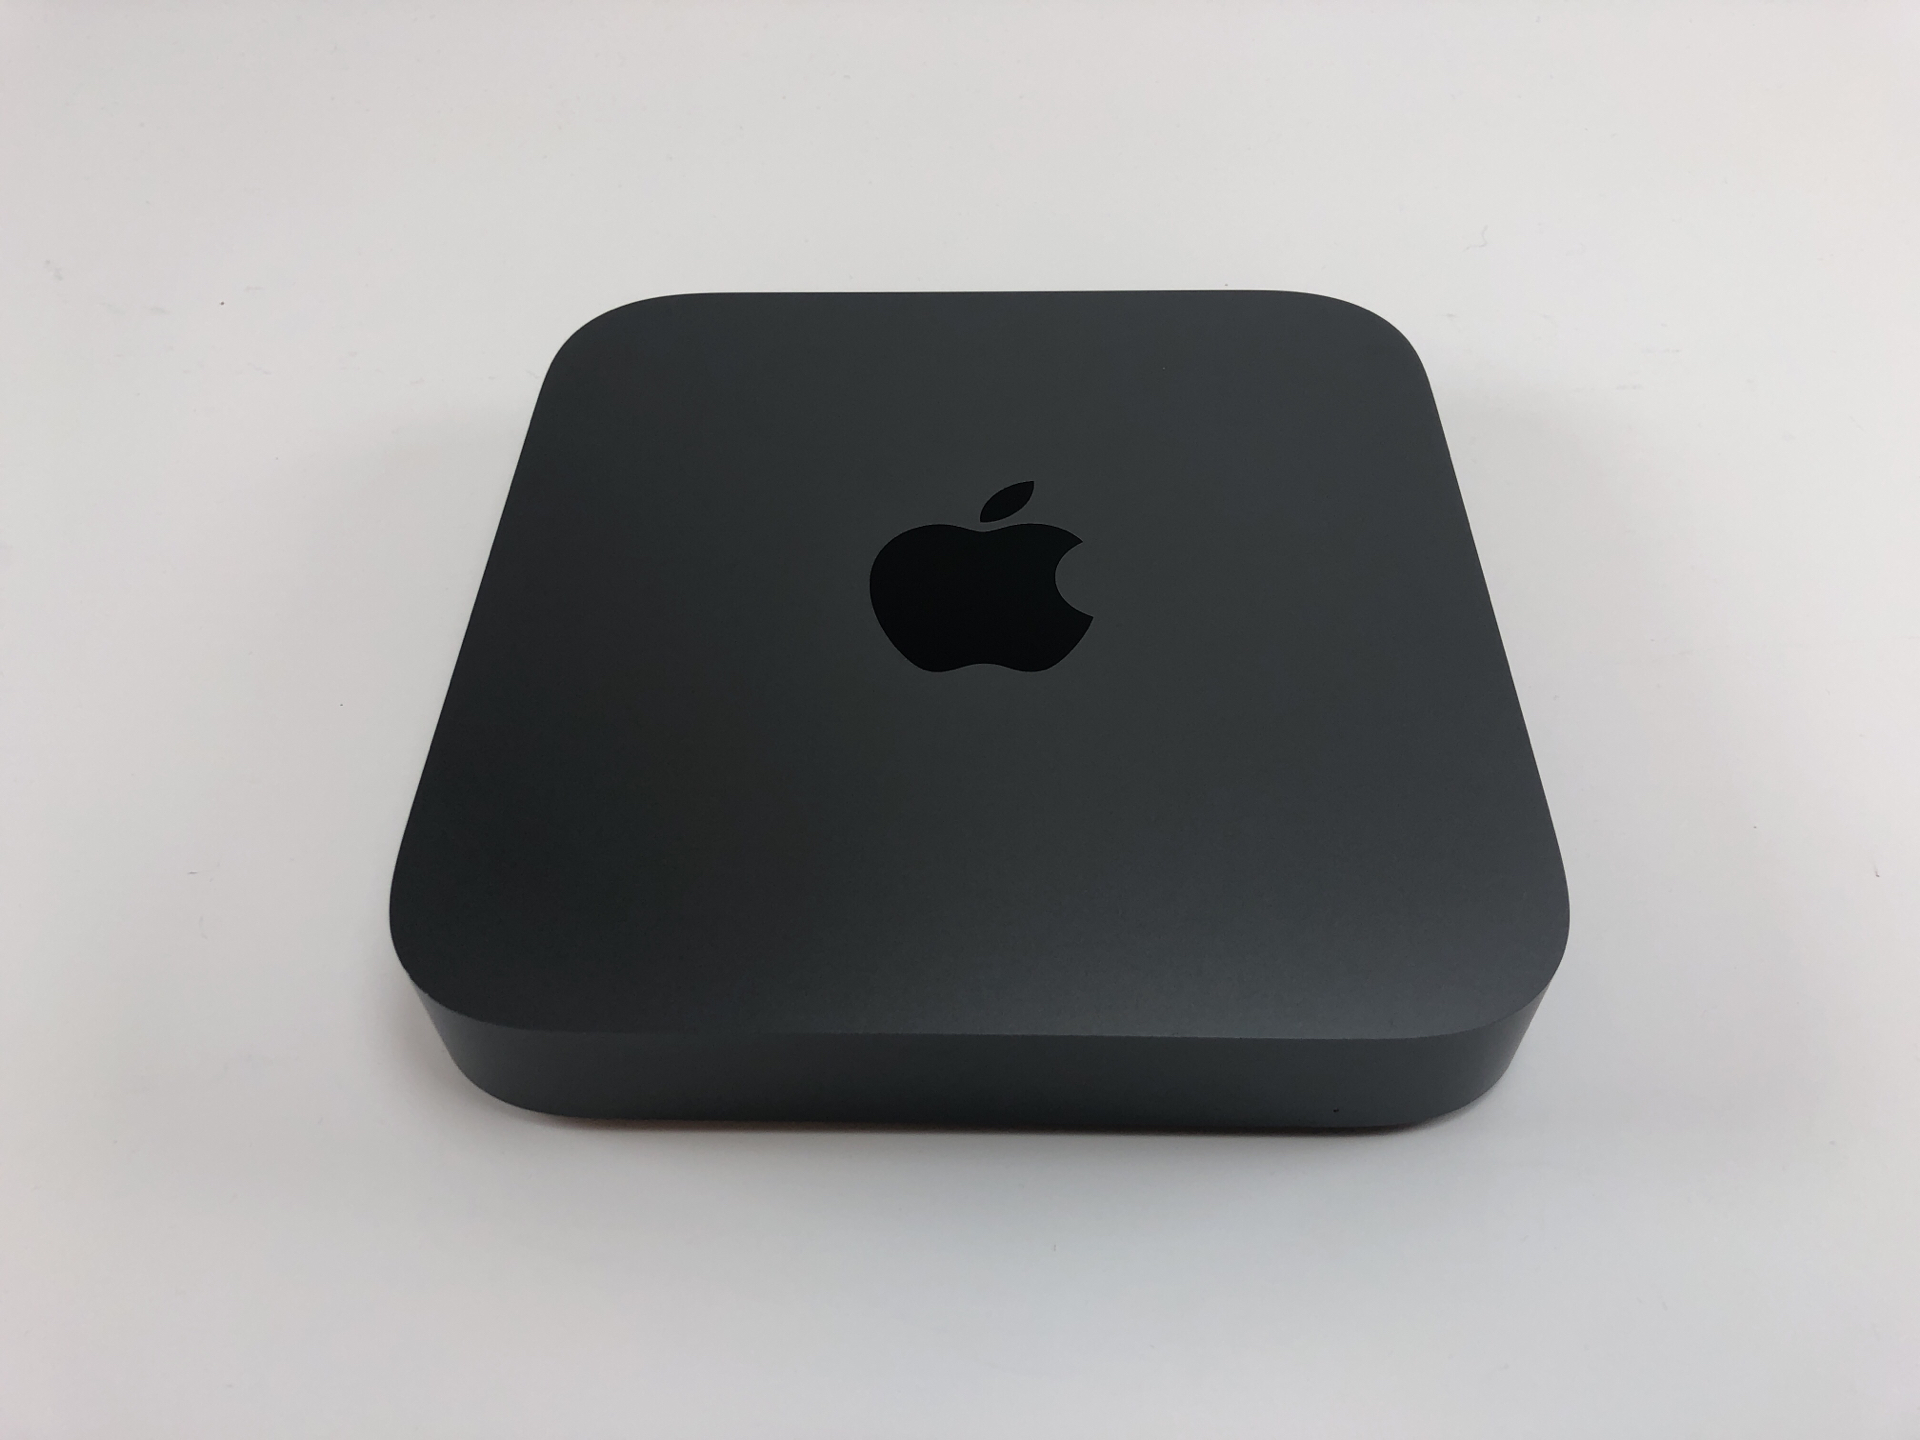 Mac Mini Late 2018 (Intel Quad-Core i3 3.6 GHz 64 GB RAM 128 GB SSD), Intel Quad-Core i3 3.6 GHz, 64 GB RAM, 128 GB SSD, imagen 2